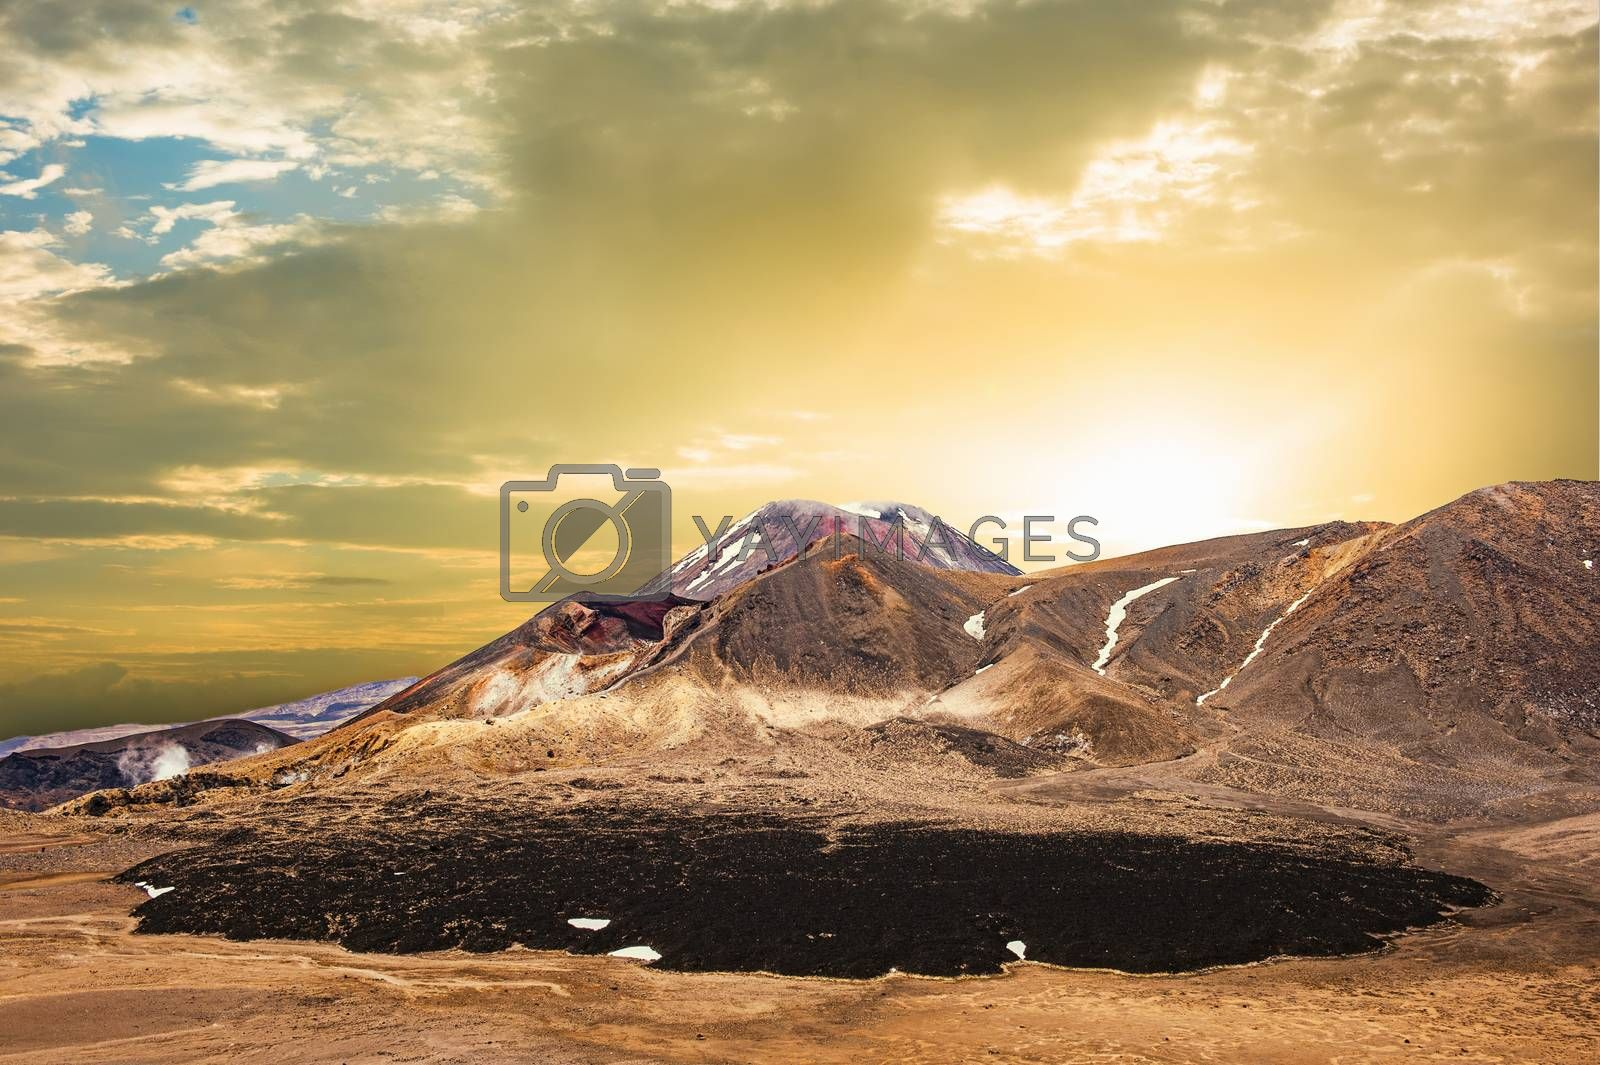 Sunset over Mount Ngauruhoe, a famous stratovolcano in a Tongariro national park, New Zealand